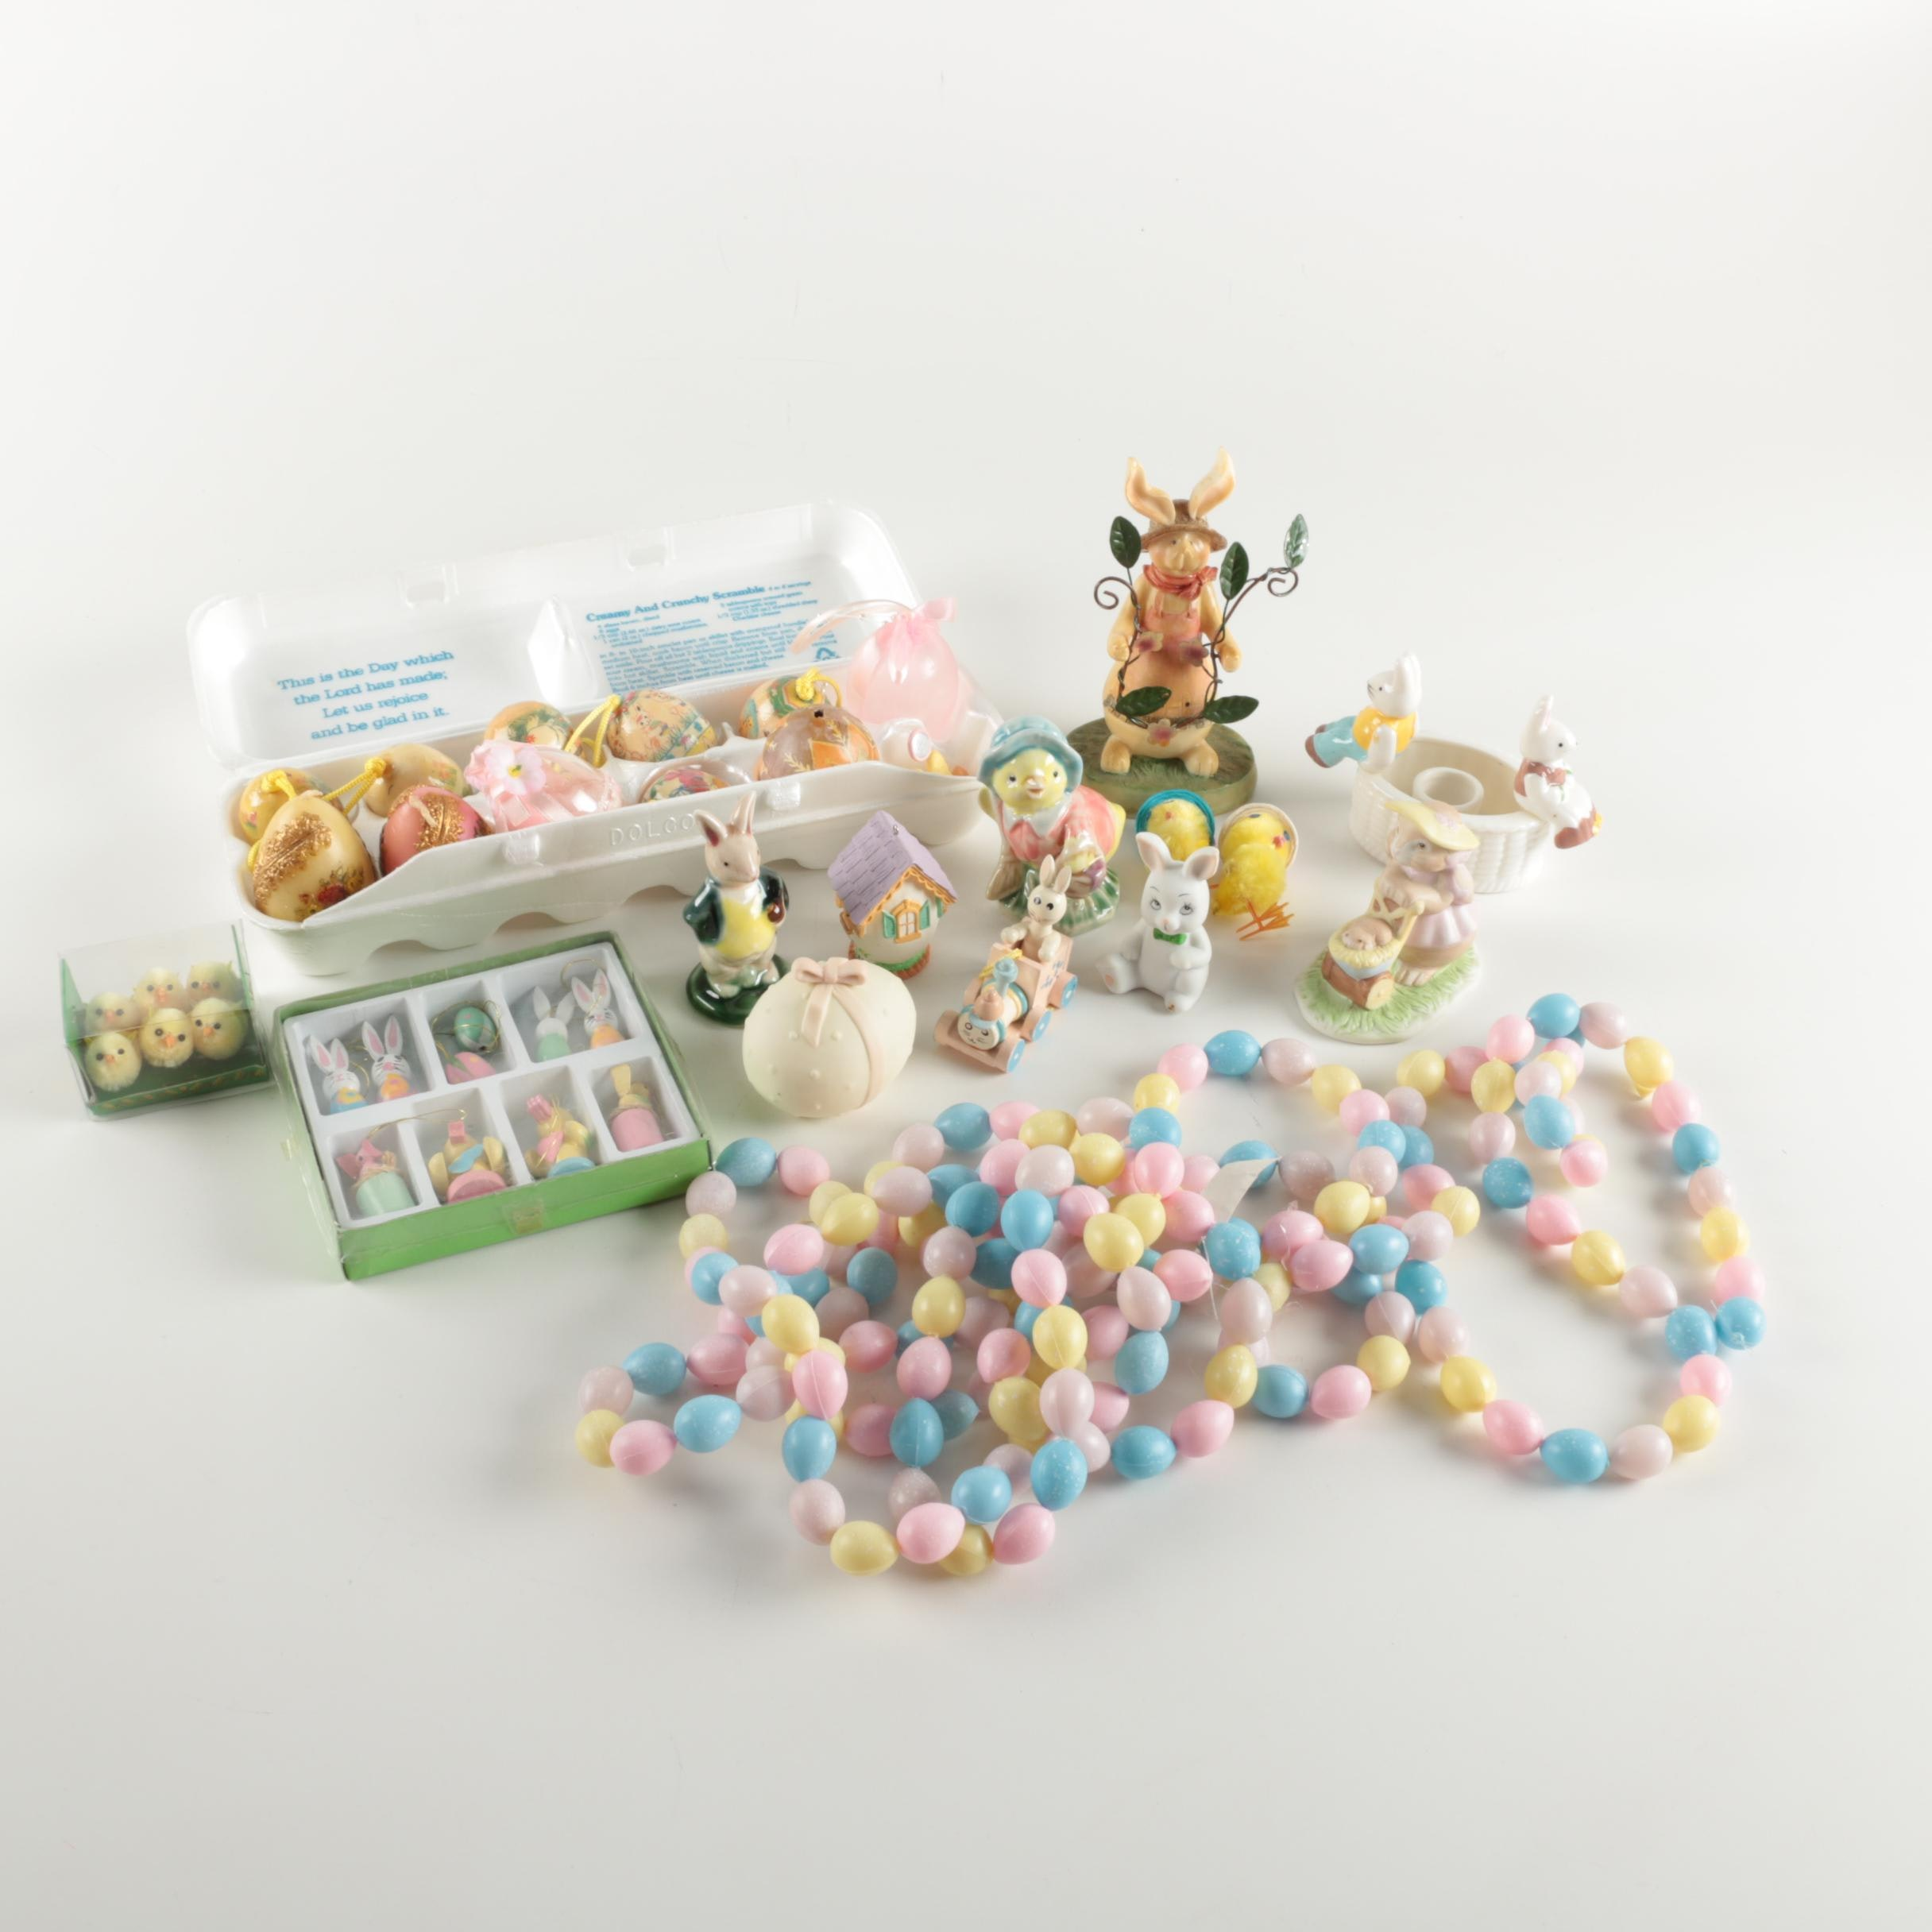 Assortment of Easter Ornaments and Figurines